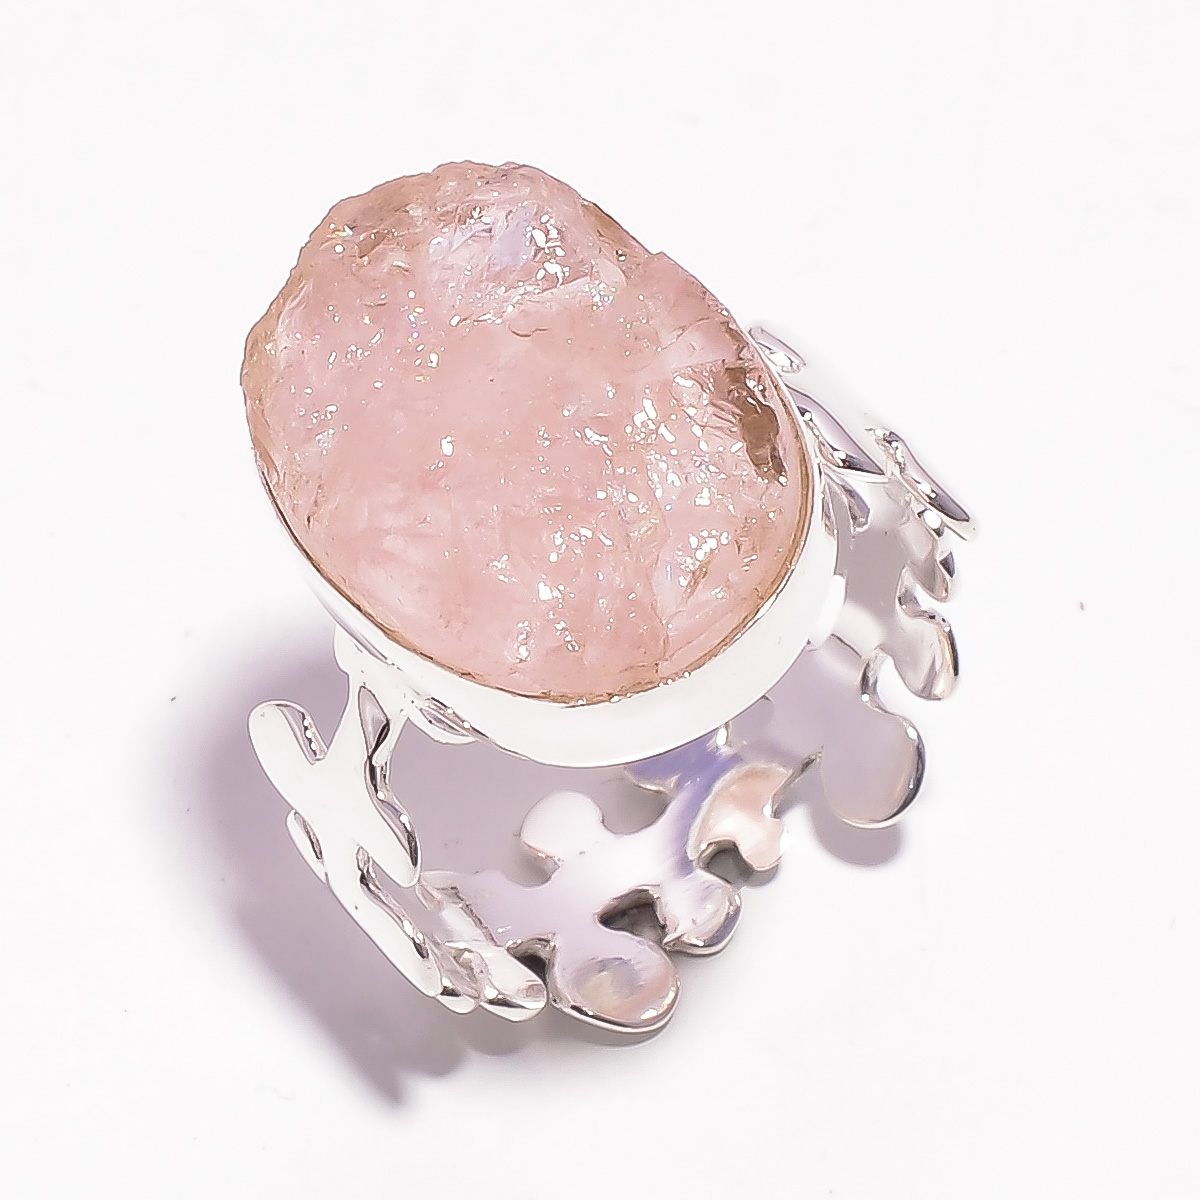 Rose Quartz Raw Gemstone 925 Sterling Silver Ring Size US 8